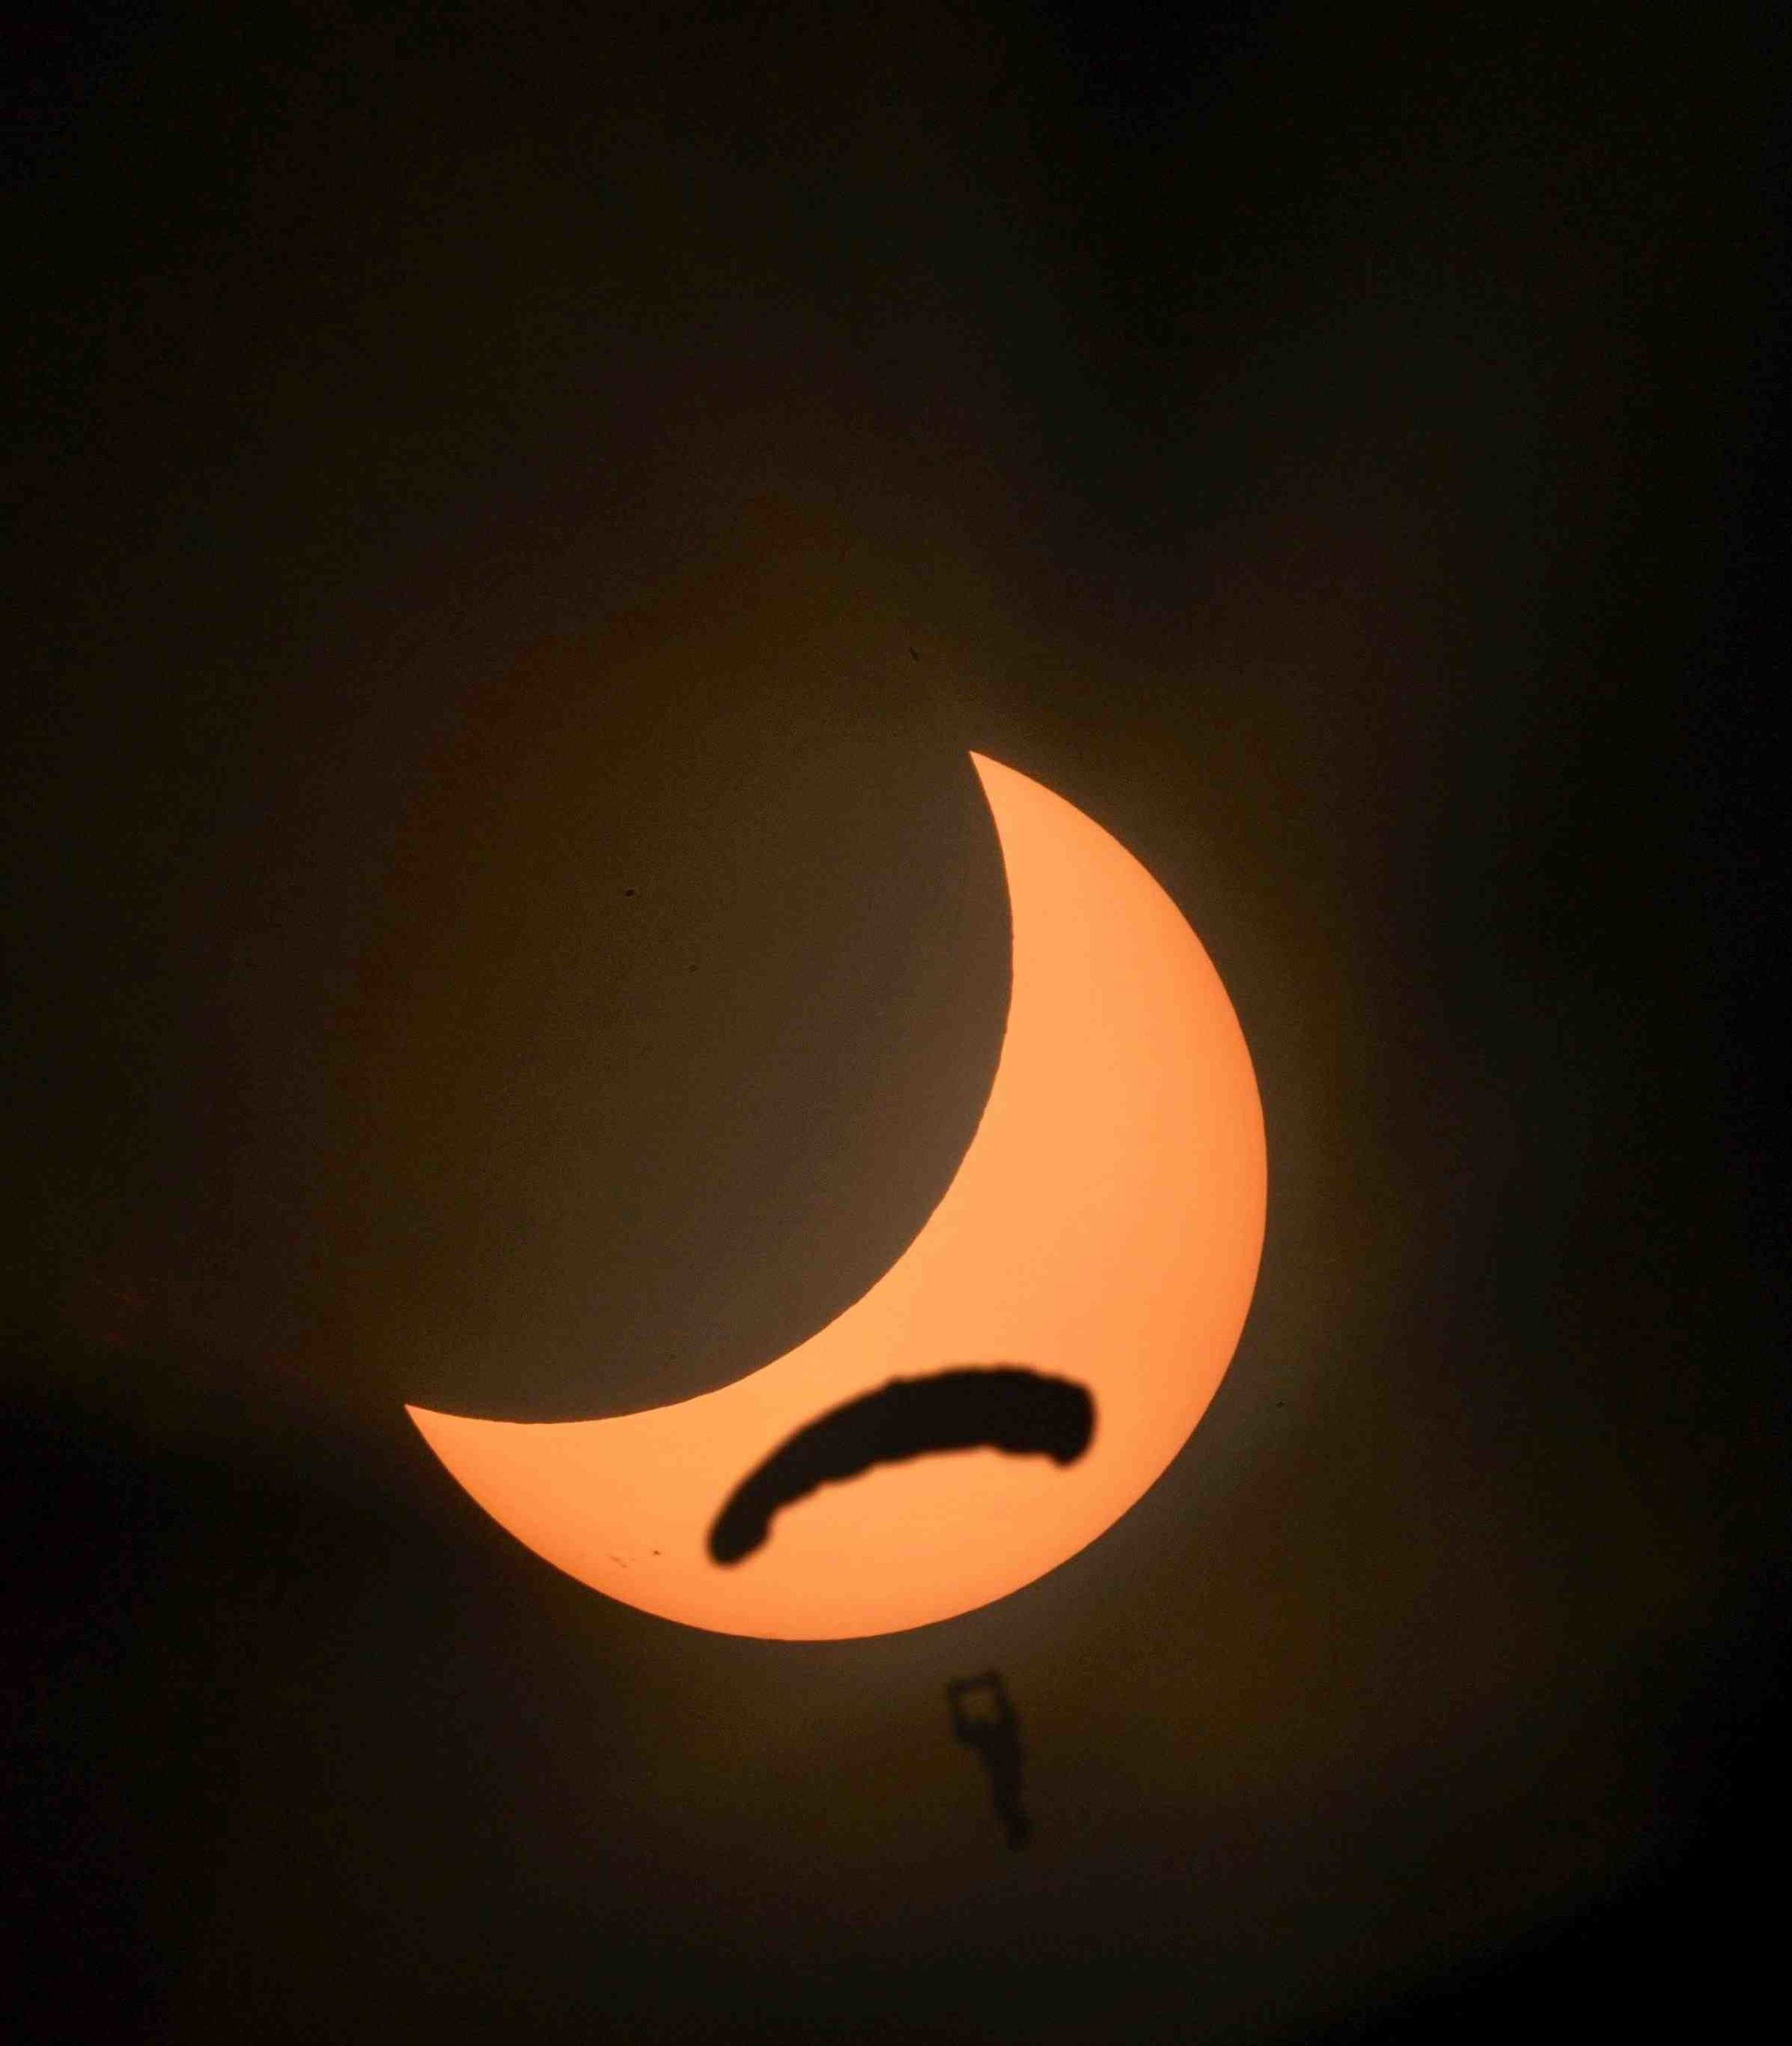 Will the eclipse be visible in California?